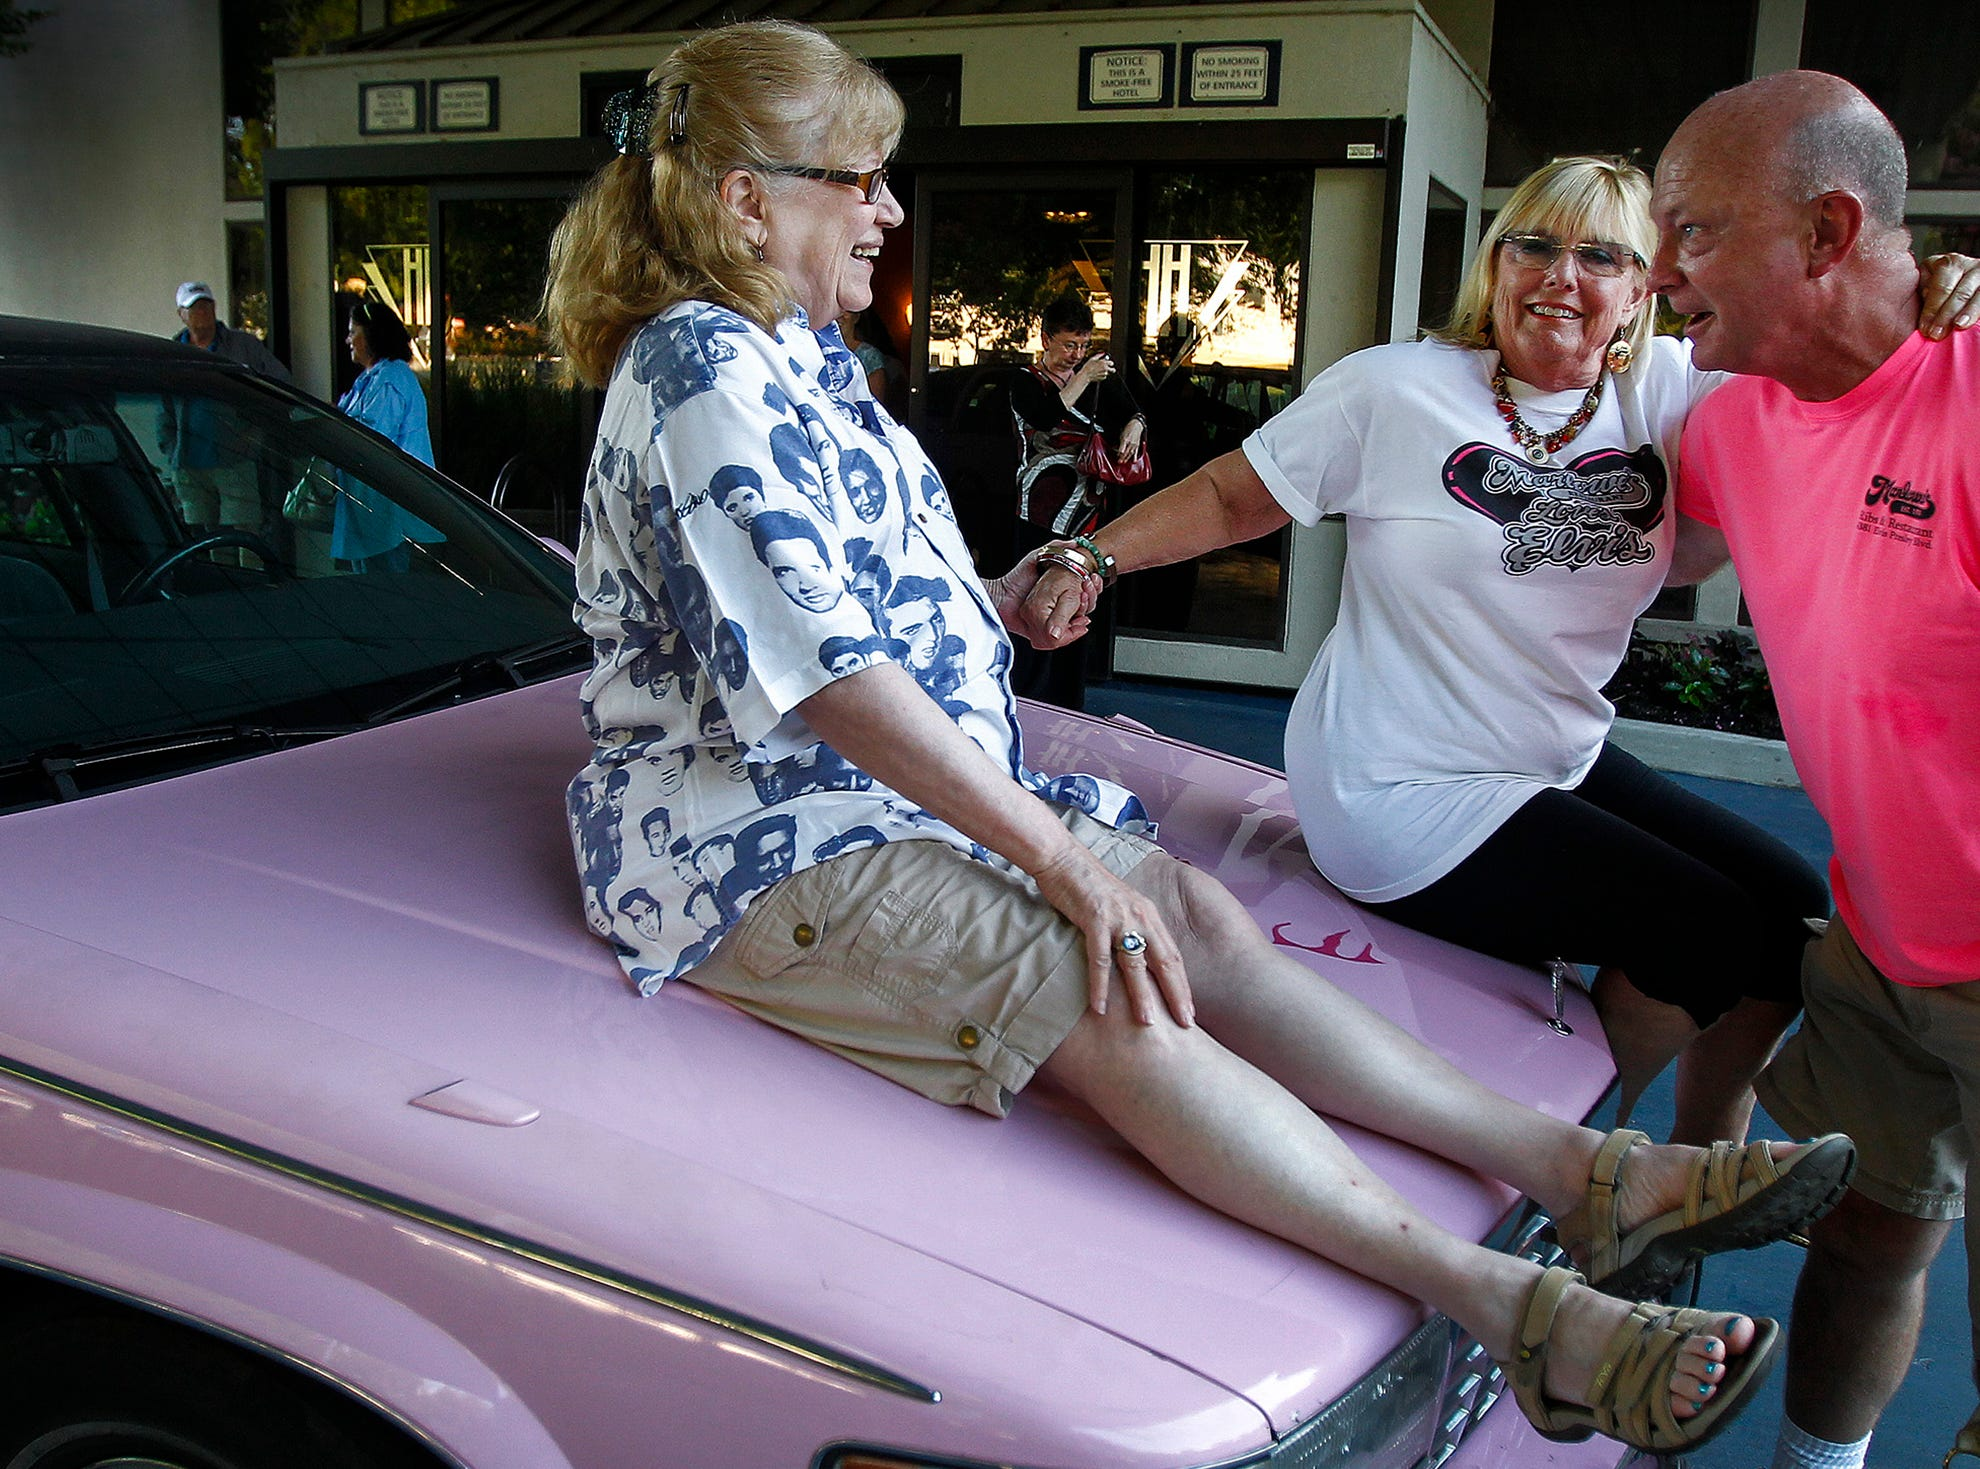 August 6, 2015 - Mary Hinds, from Los Angeles, (middle) gets a lift from Marlowe's driver Jim Deweese (right) to take a picture with longtime friend Marjorie Montgomery, of Boston, as they pose with a painted Elvis face on a pink limousine. The pair have been coming to Memphis for Elvis week for 23 years, and have a 4-page type-written list of places they try to eat when they're here. (Mark Weber/The Commercial Appeal)